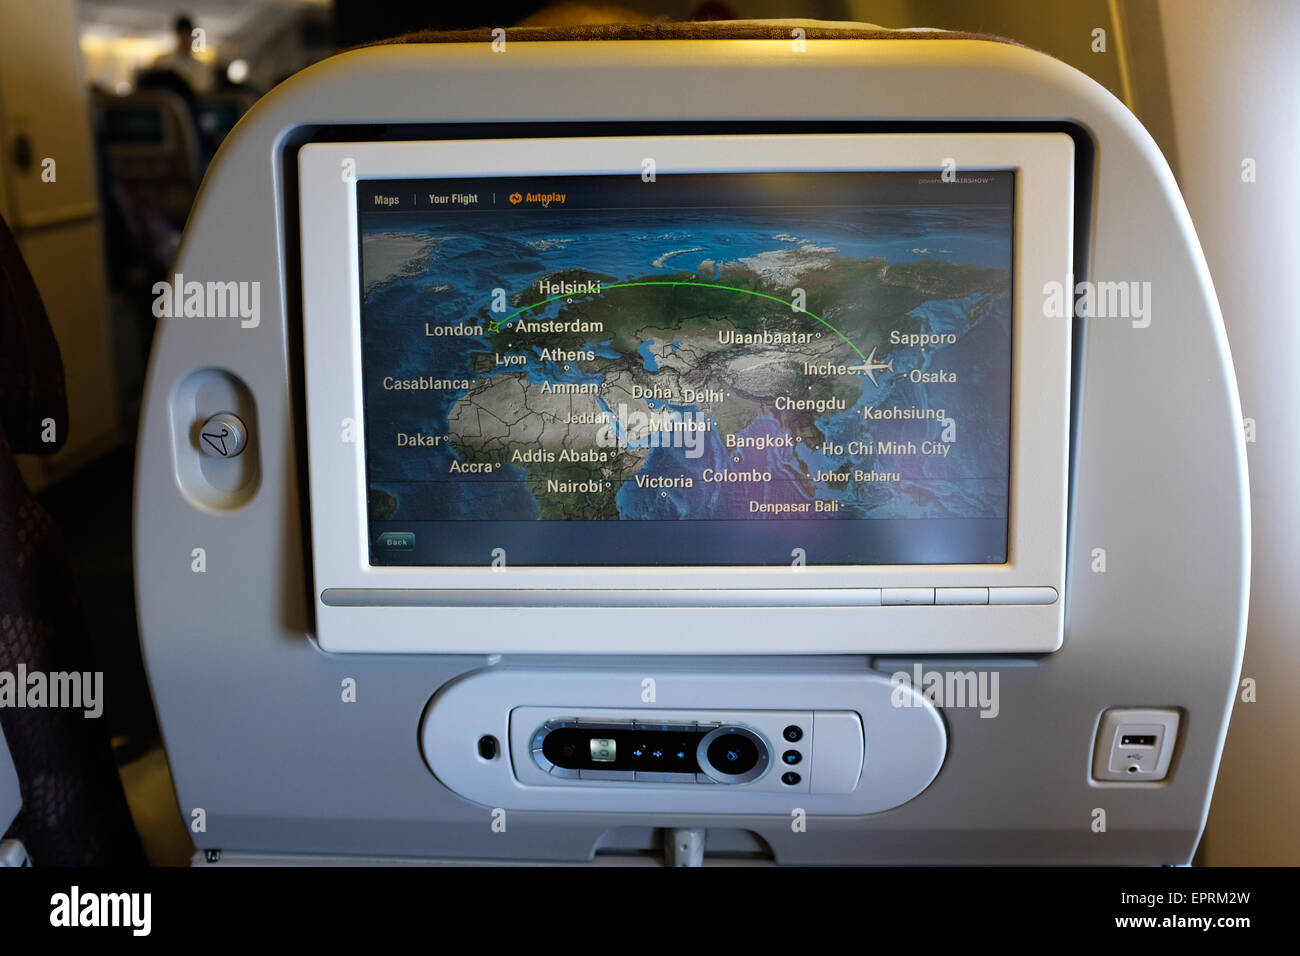 A seat-back screen on a Korean Air passenger plane. - Stock Image